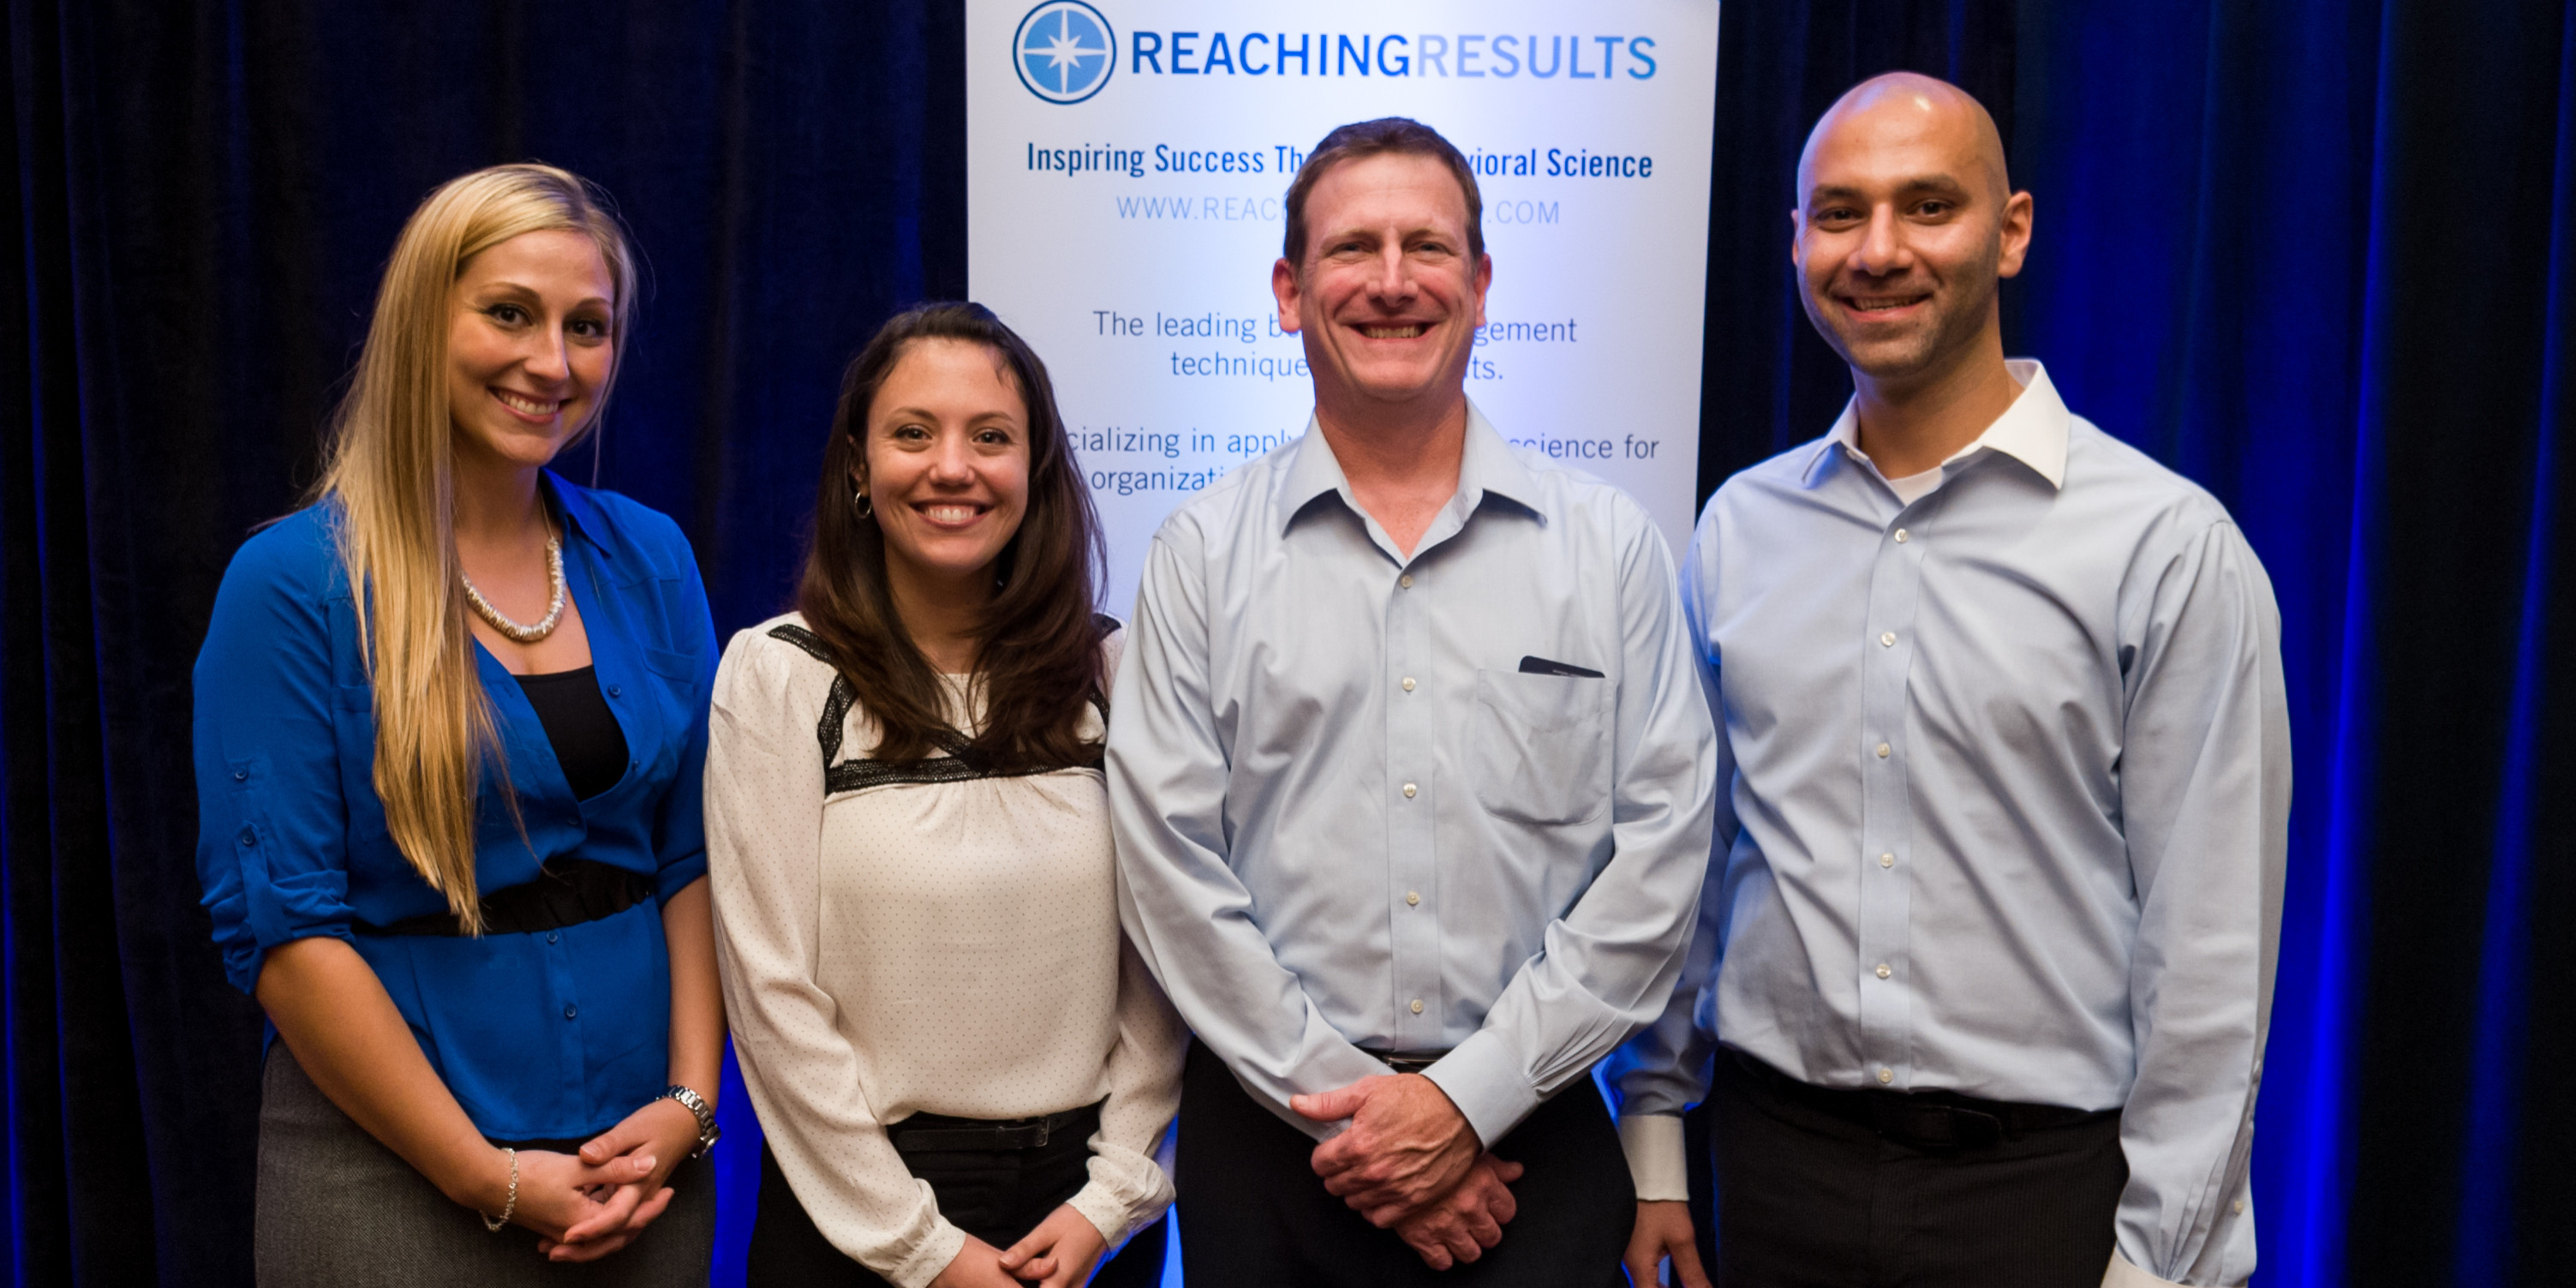 Reaching Results team